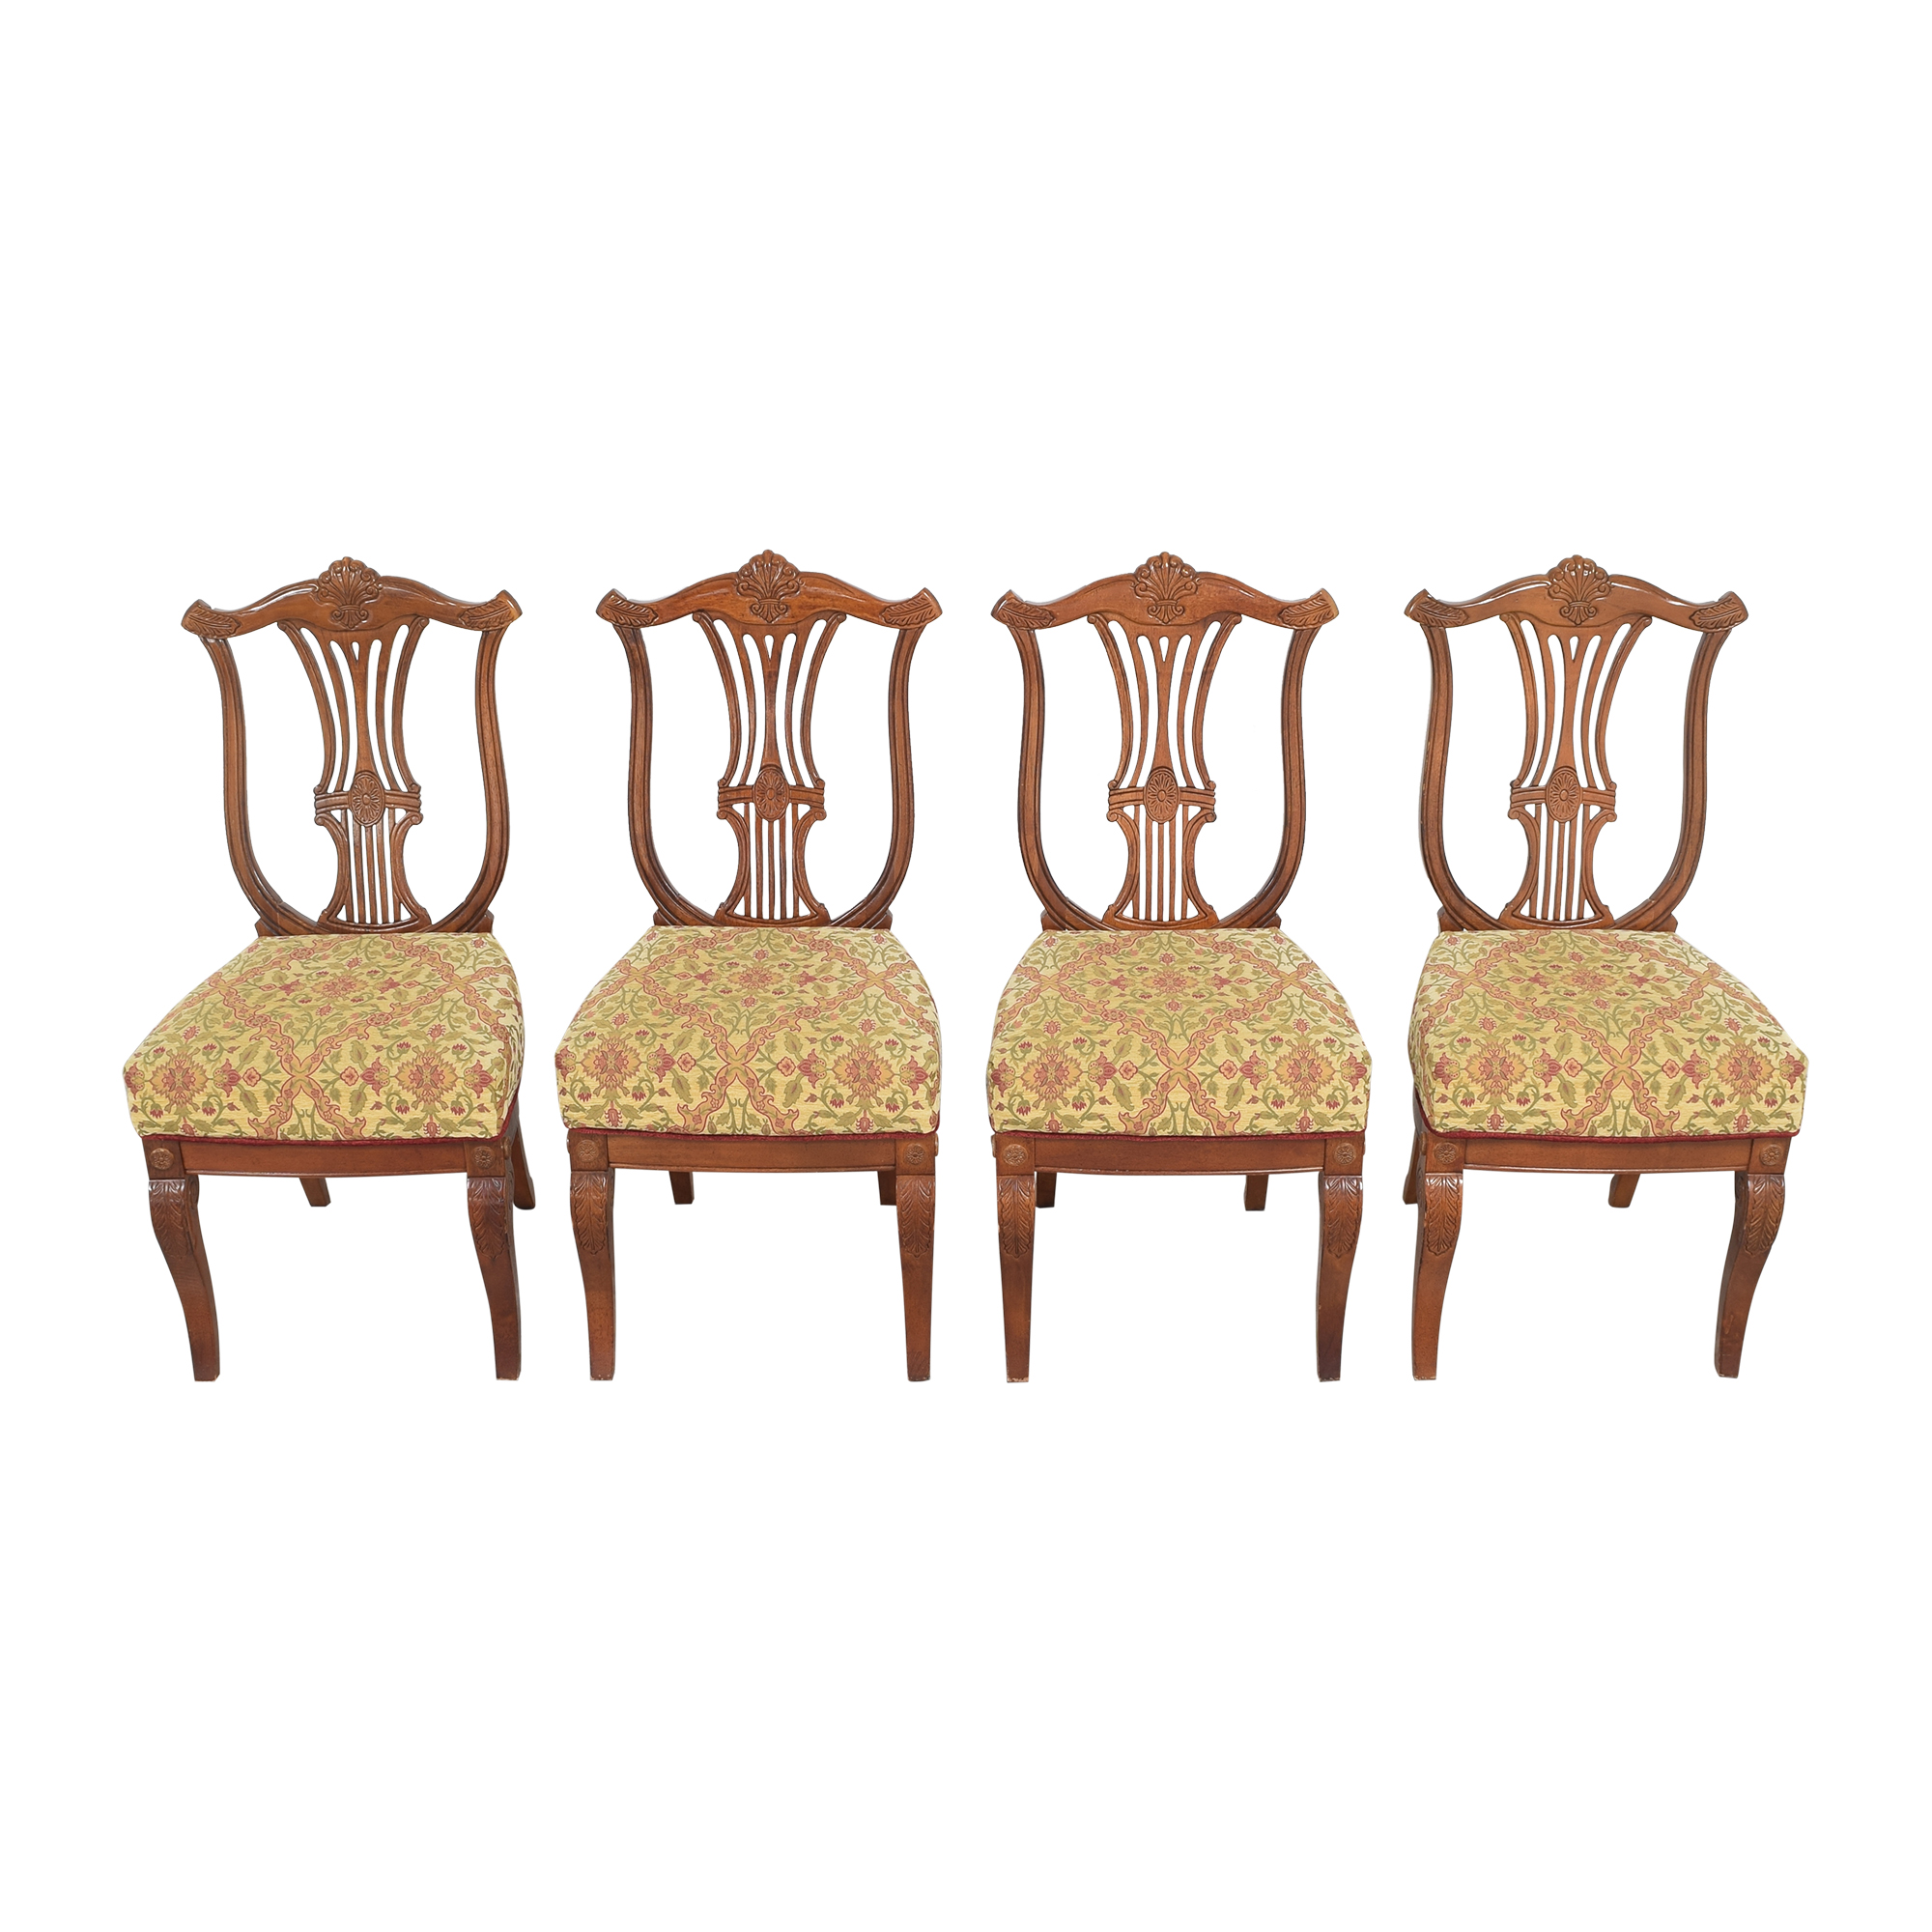 Universal Furniture Universal Furniture Upholstered Dining Chairs Dining Chairs